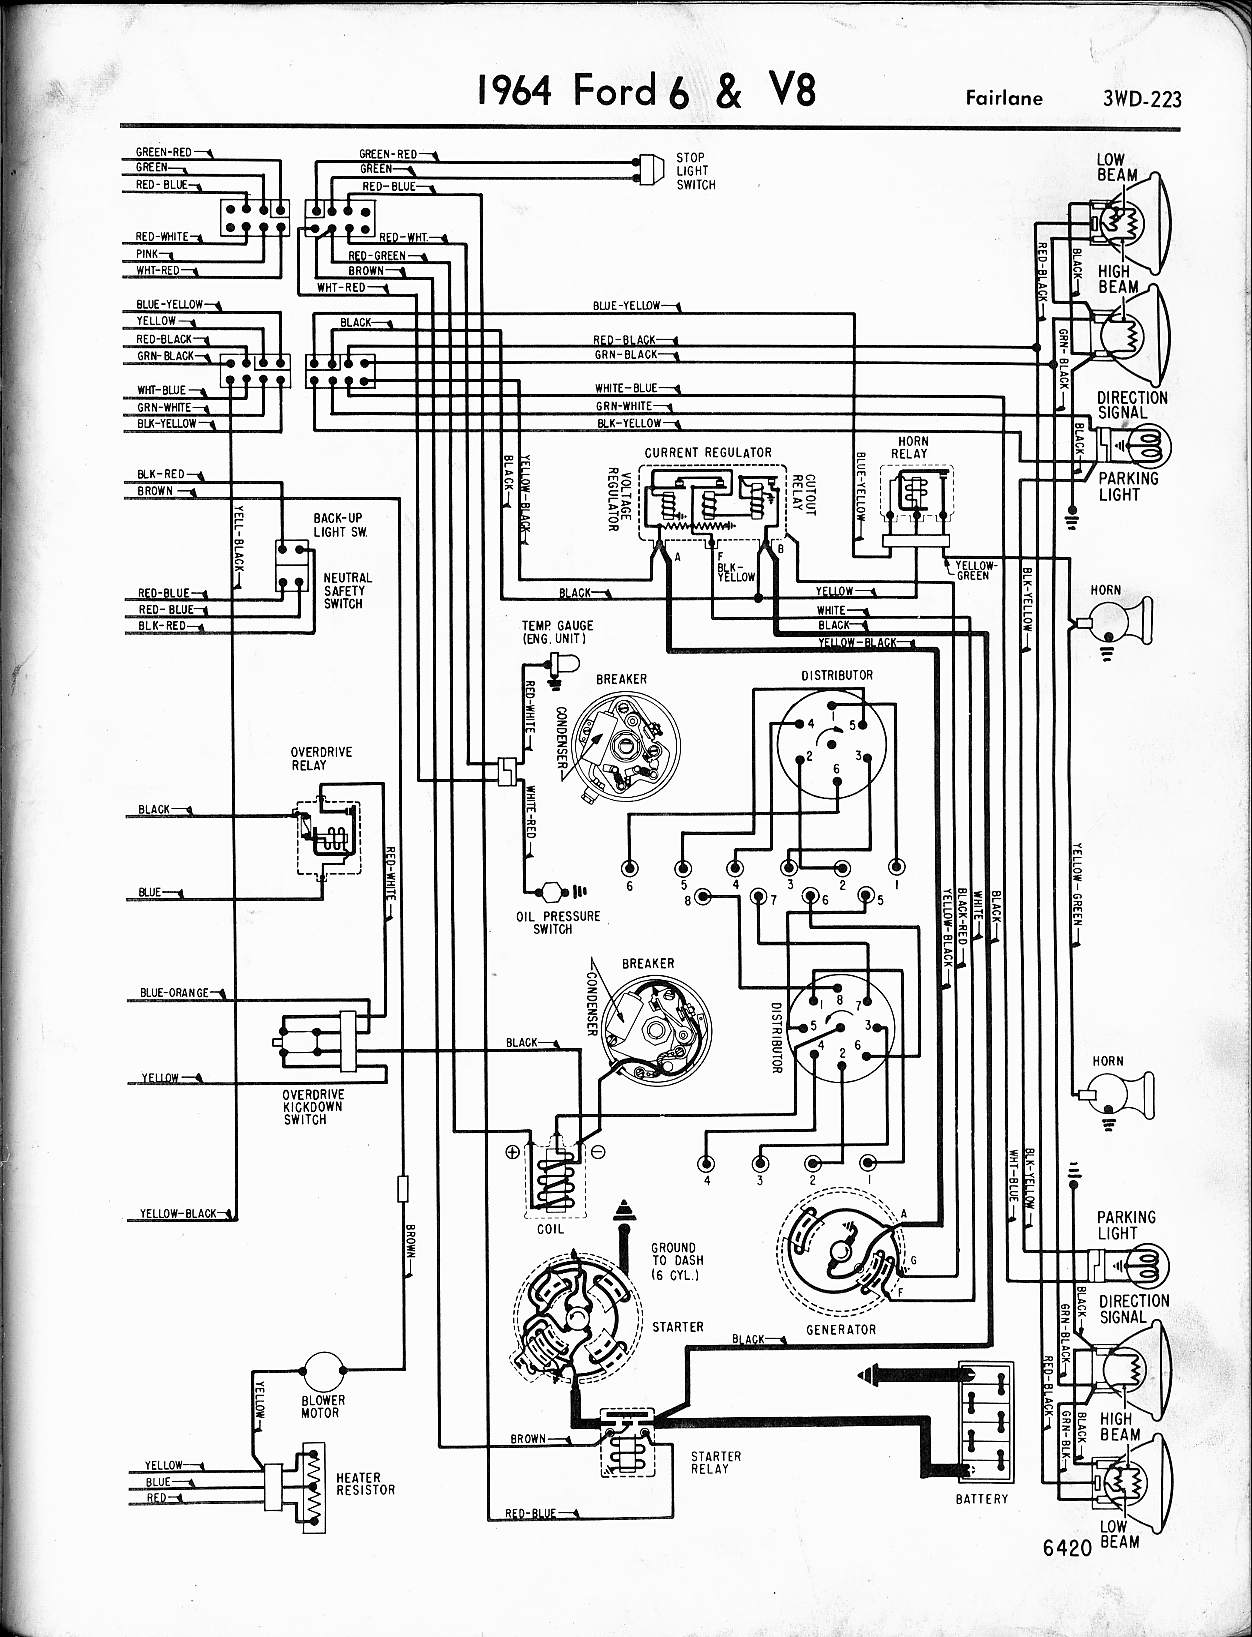 MWire5765 223 1964 f100 wiring diagram 1965 f100 wiring diagram \u2022 free wiring  at reclaimingppi.co